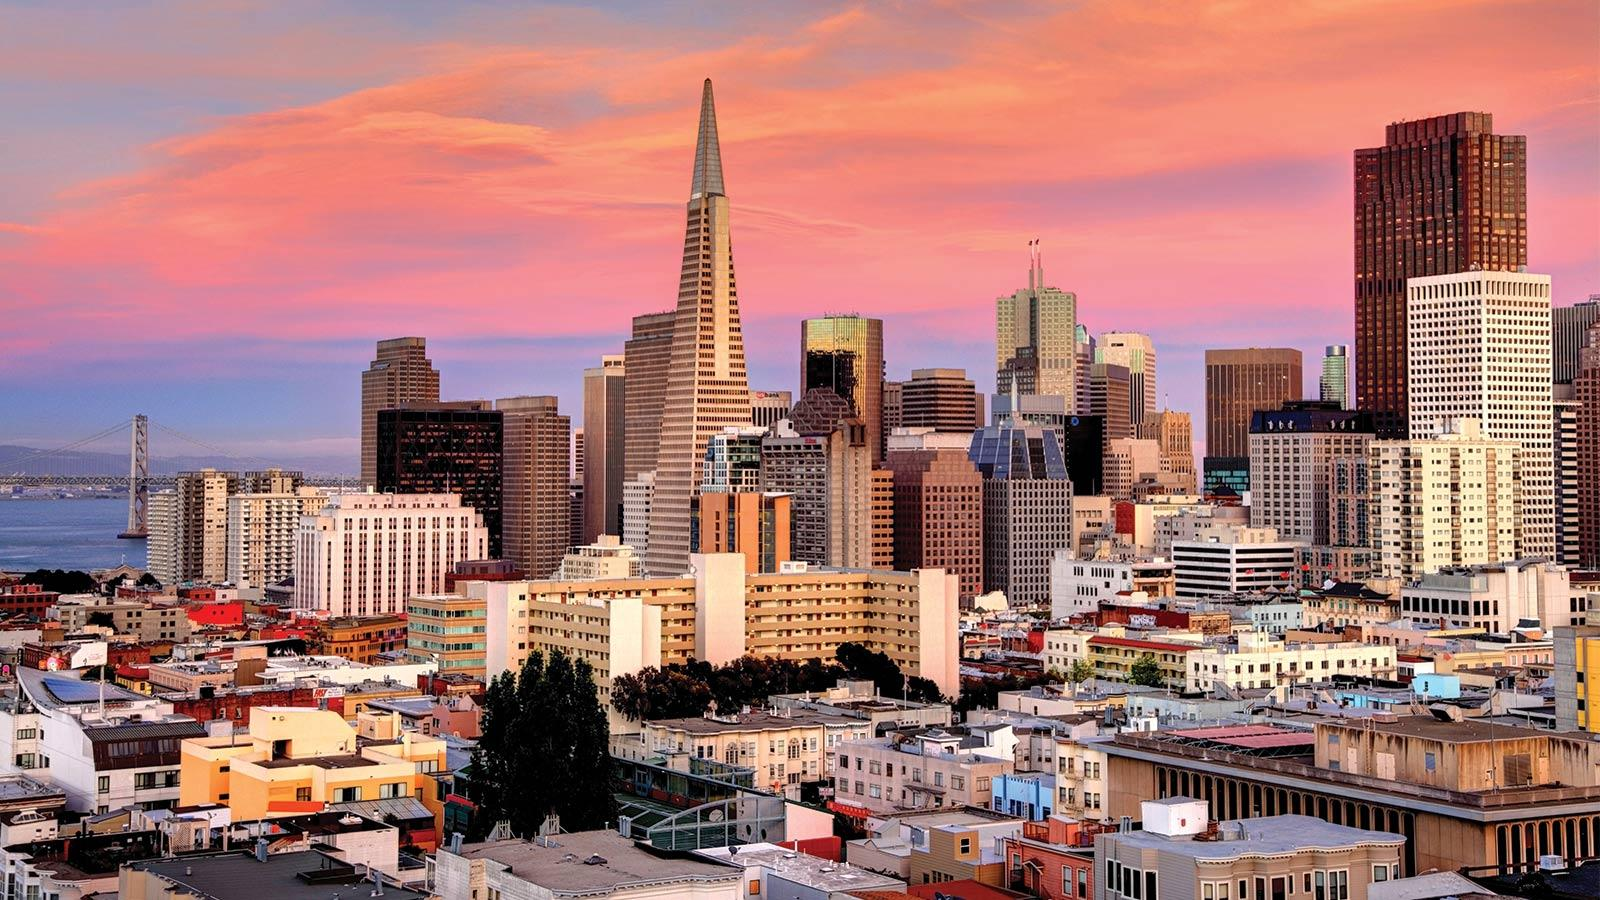 Before moving to San Francisco, make sure you brush up on these 7 things.